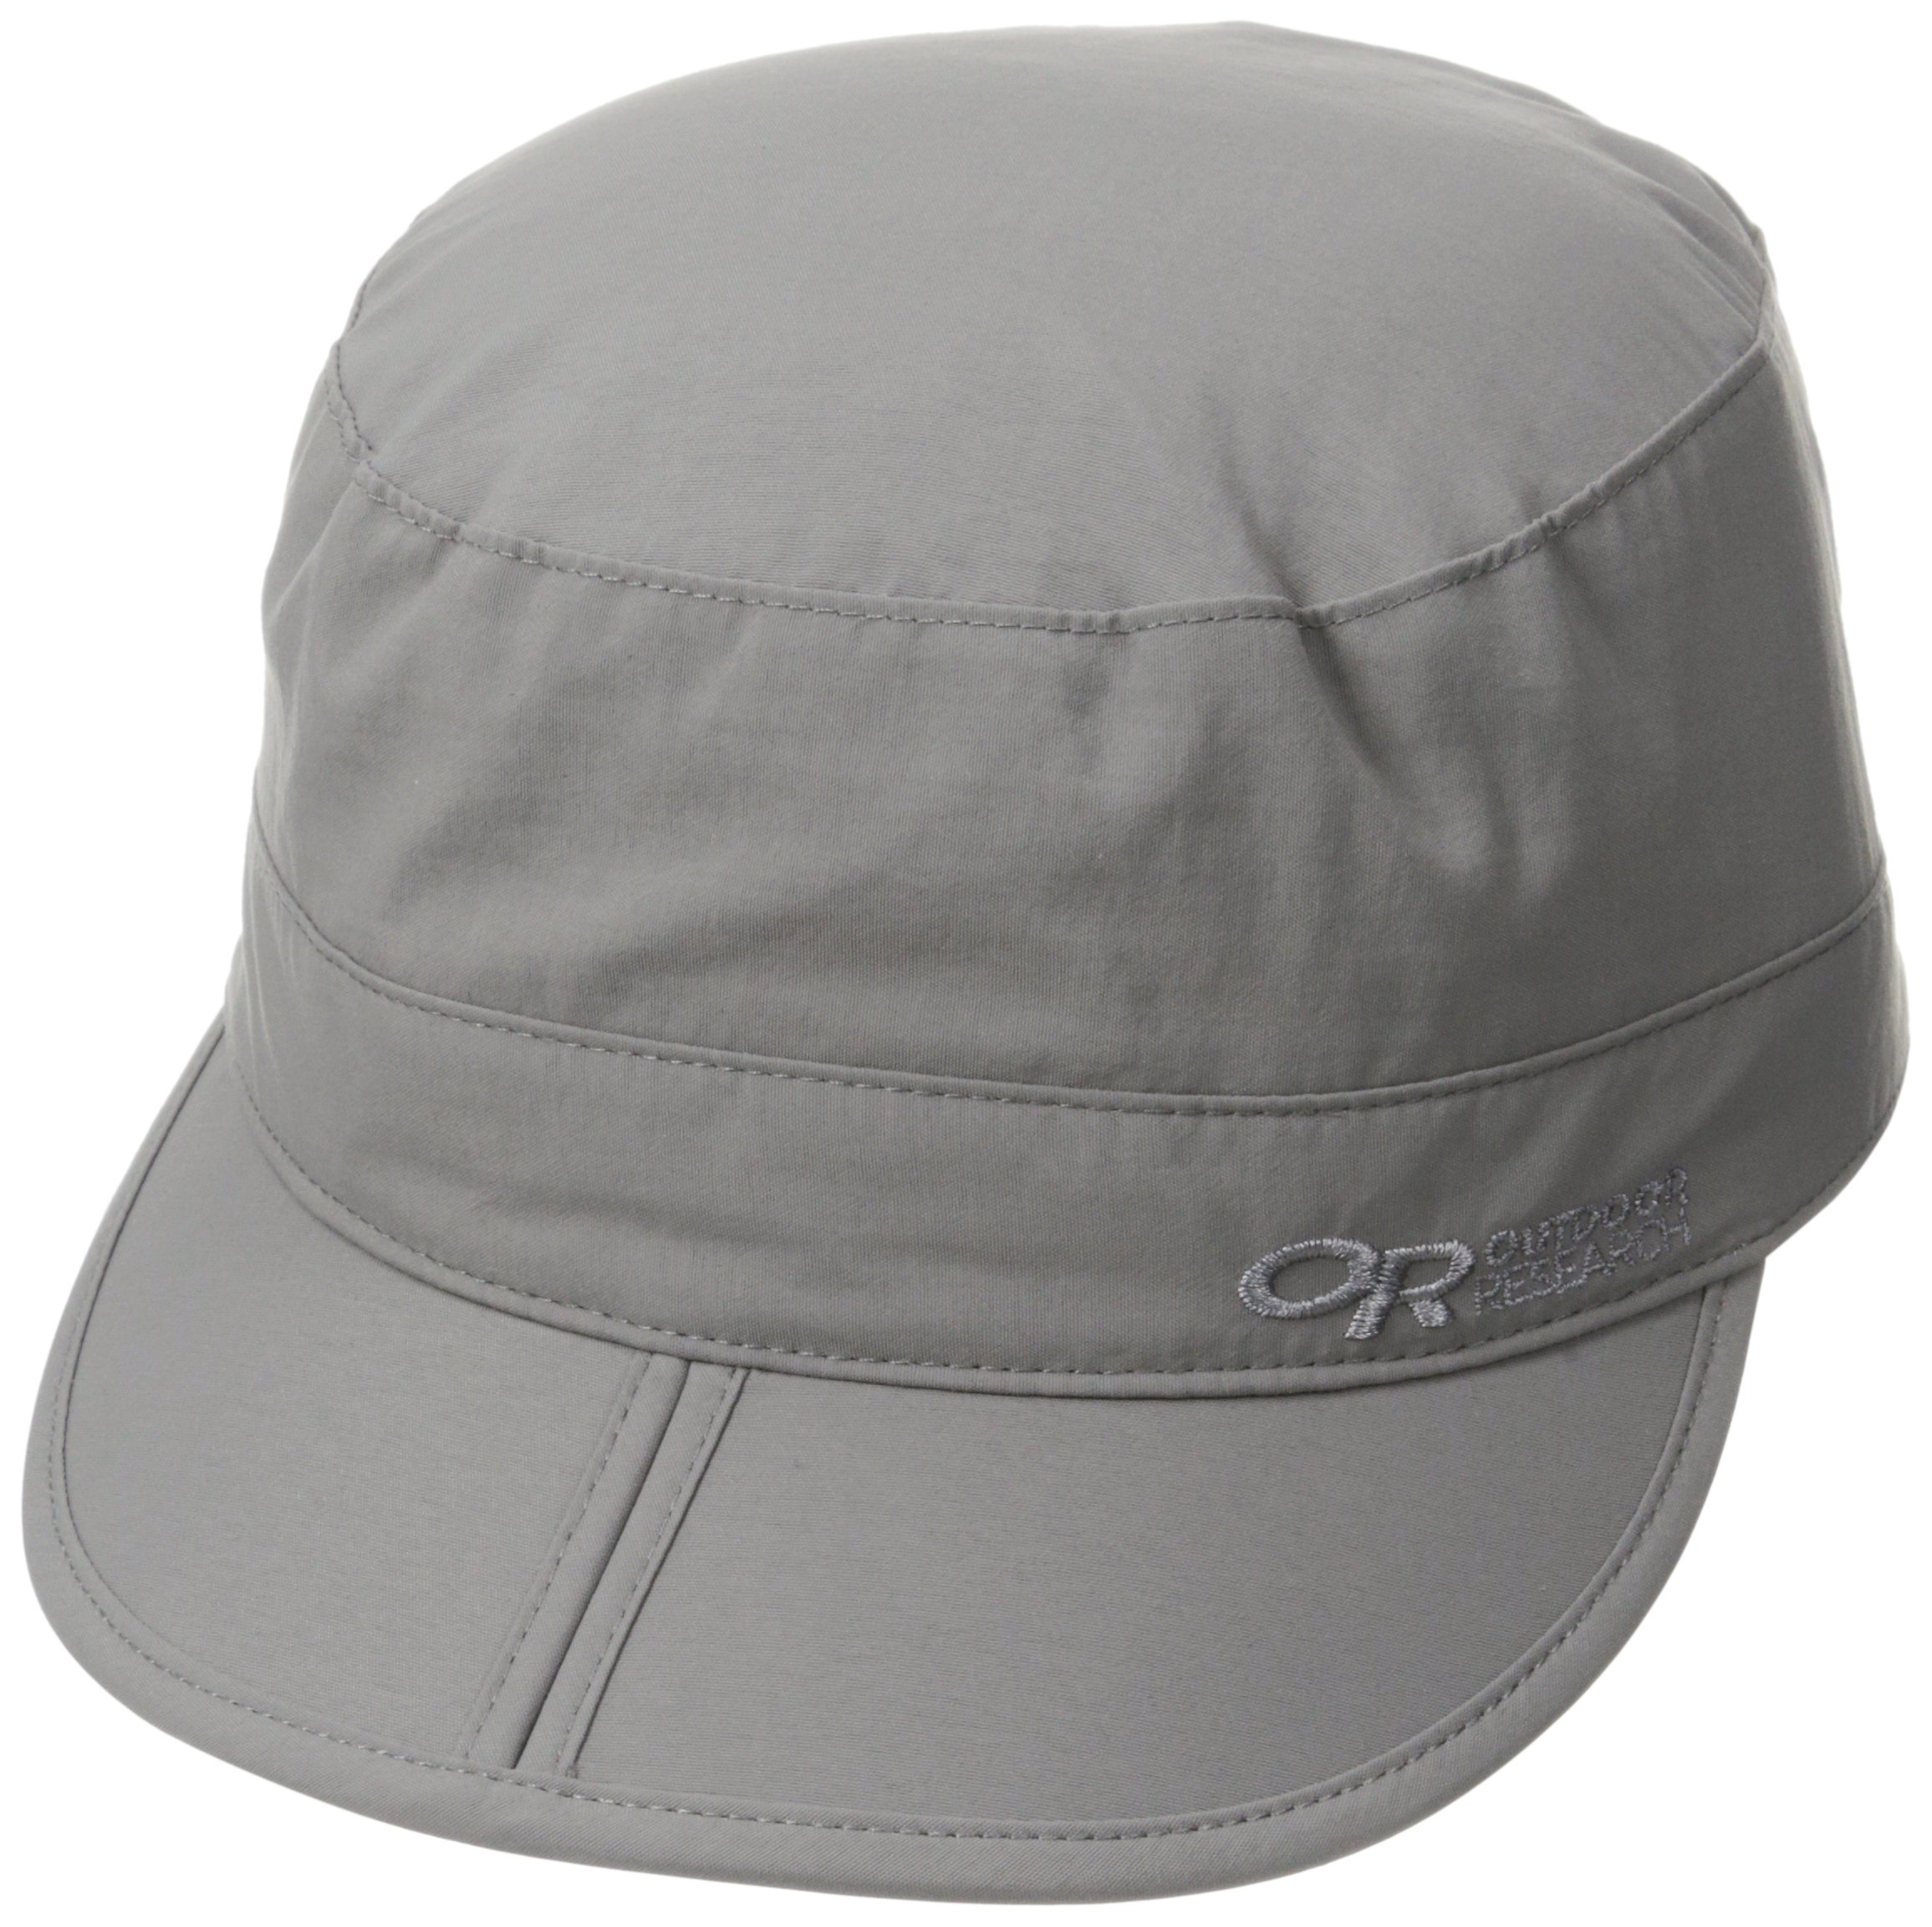 Outdoor Research Radar Pocket Cap product image